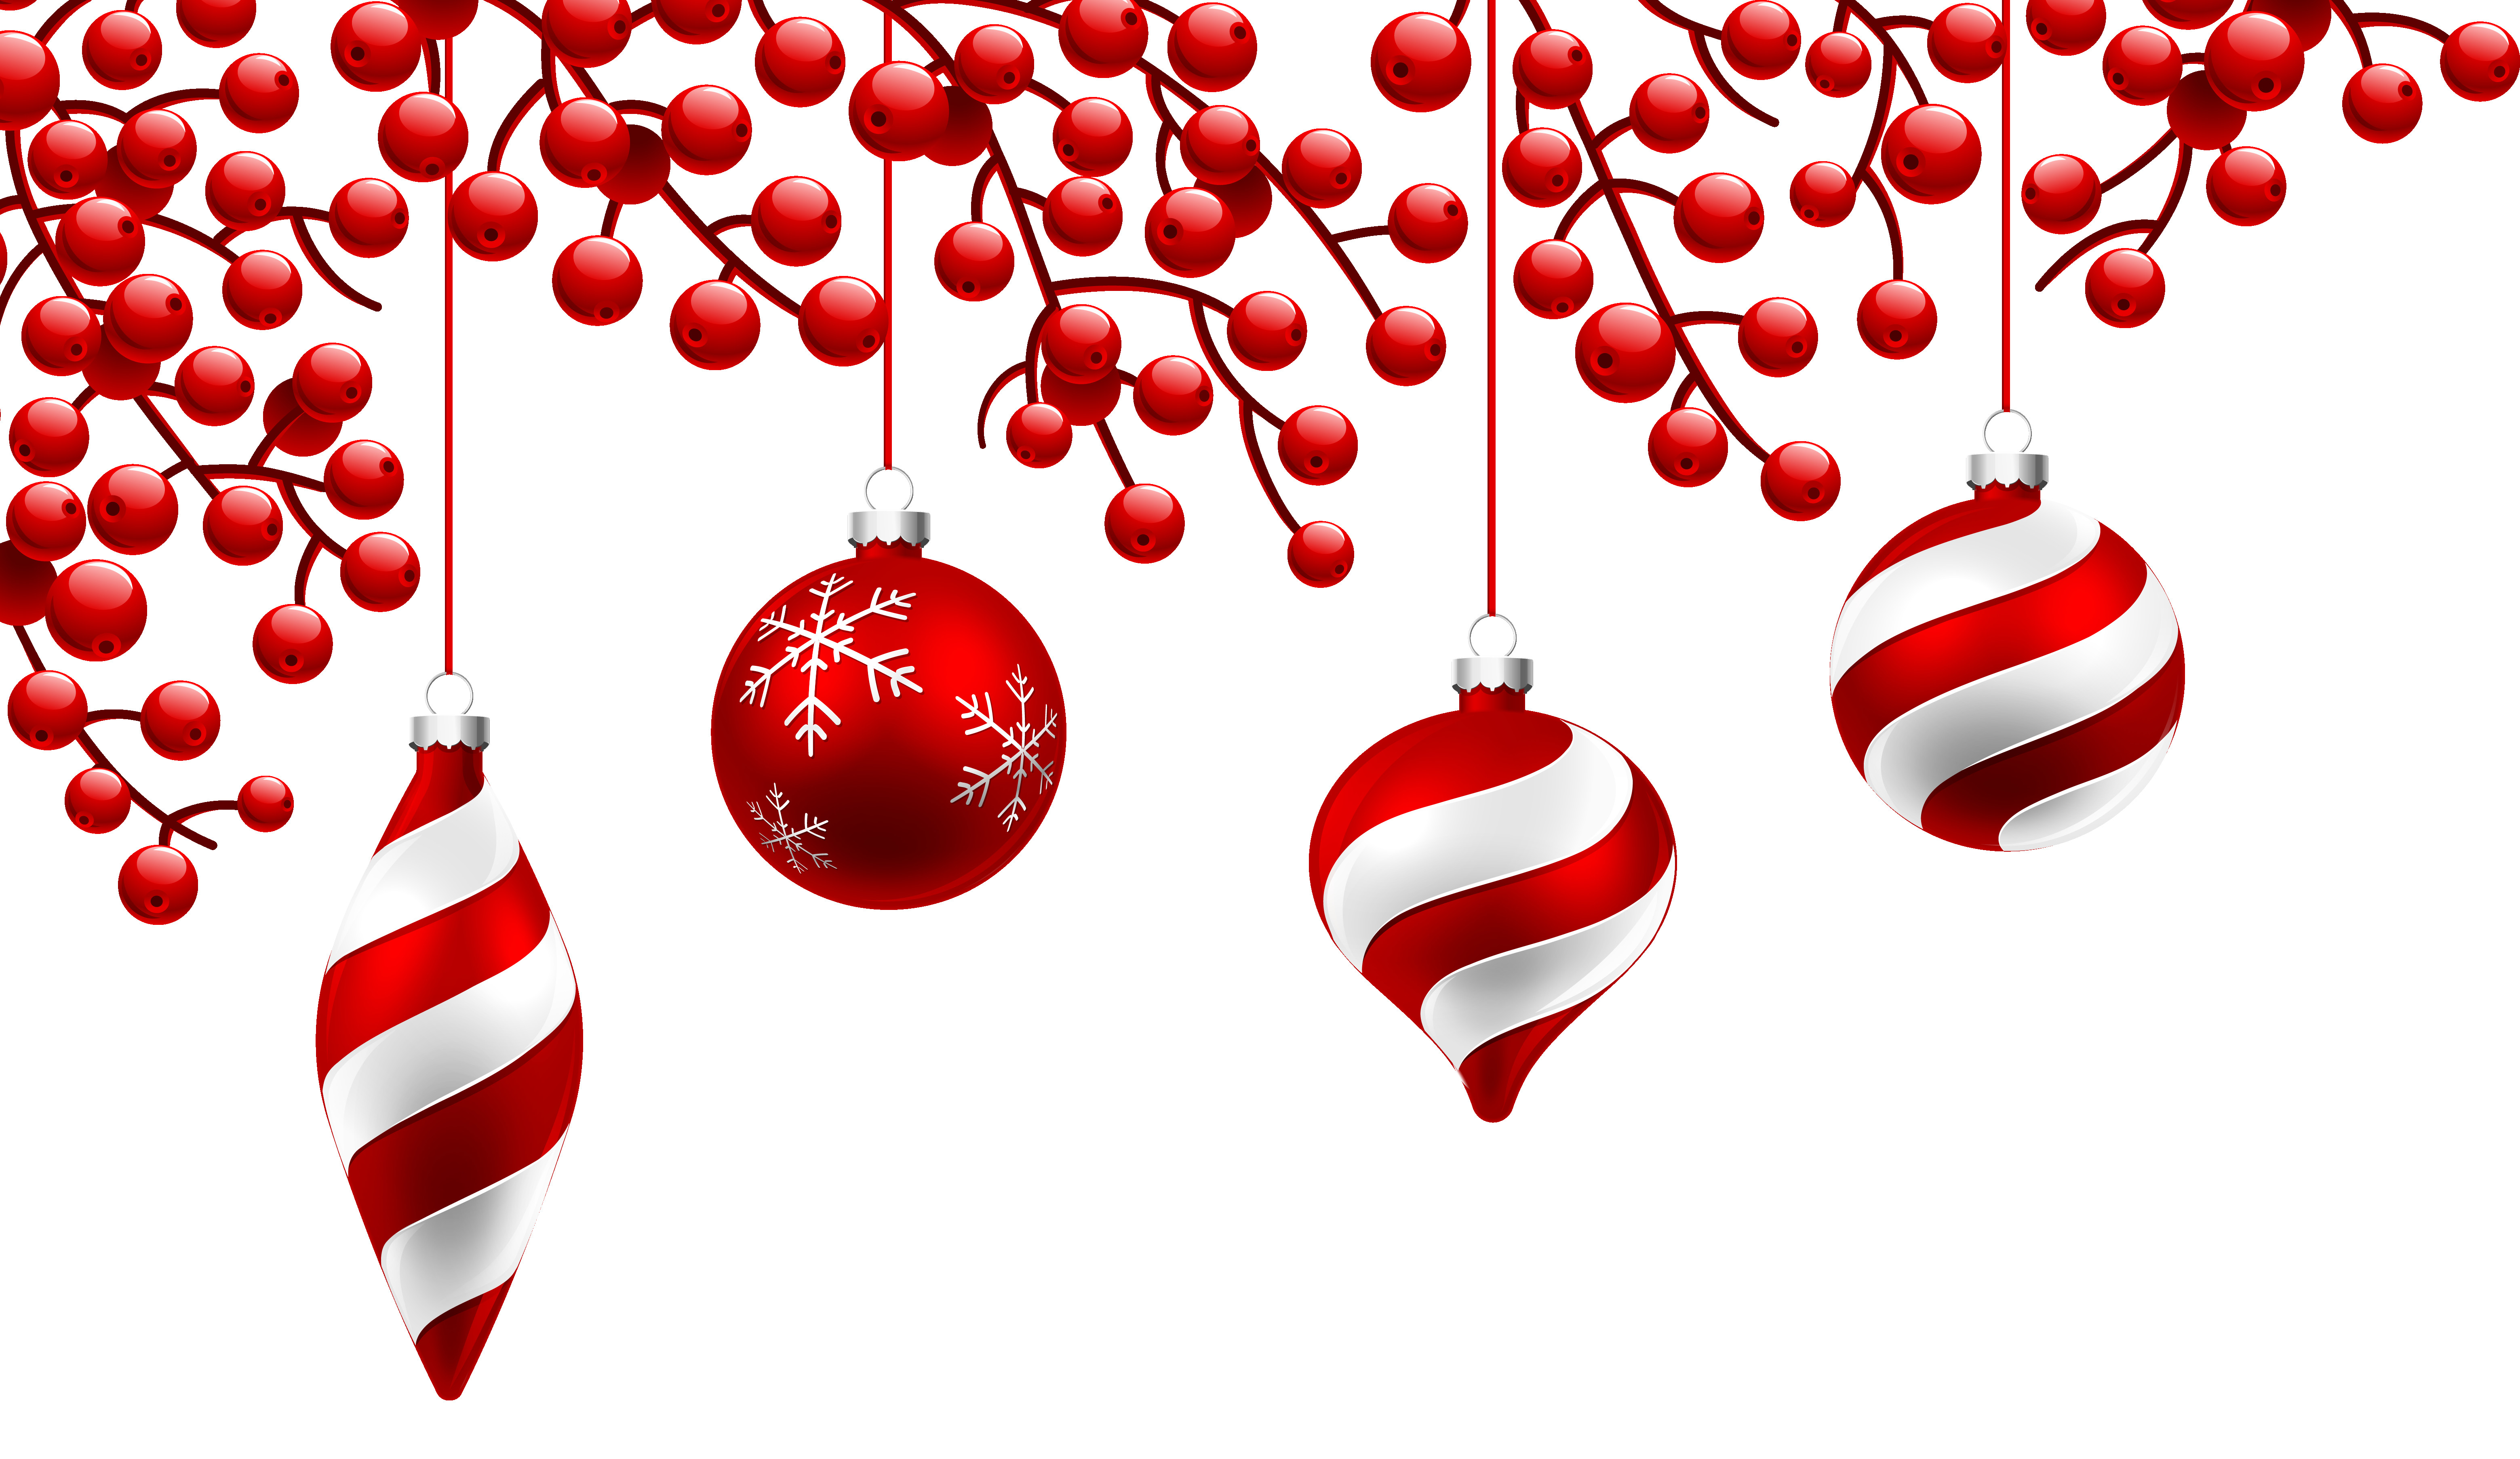 Awesome Red Christmas Decoration Png Clipart Image Red Christmas Decorations Of Fresh 42 Images Red Christmas Decorations